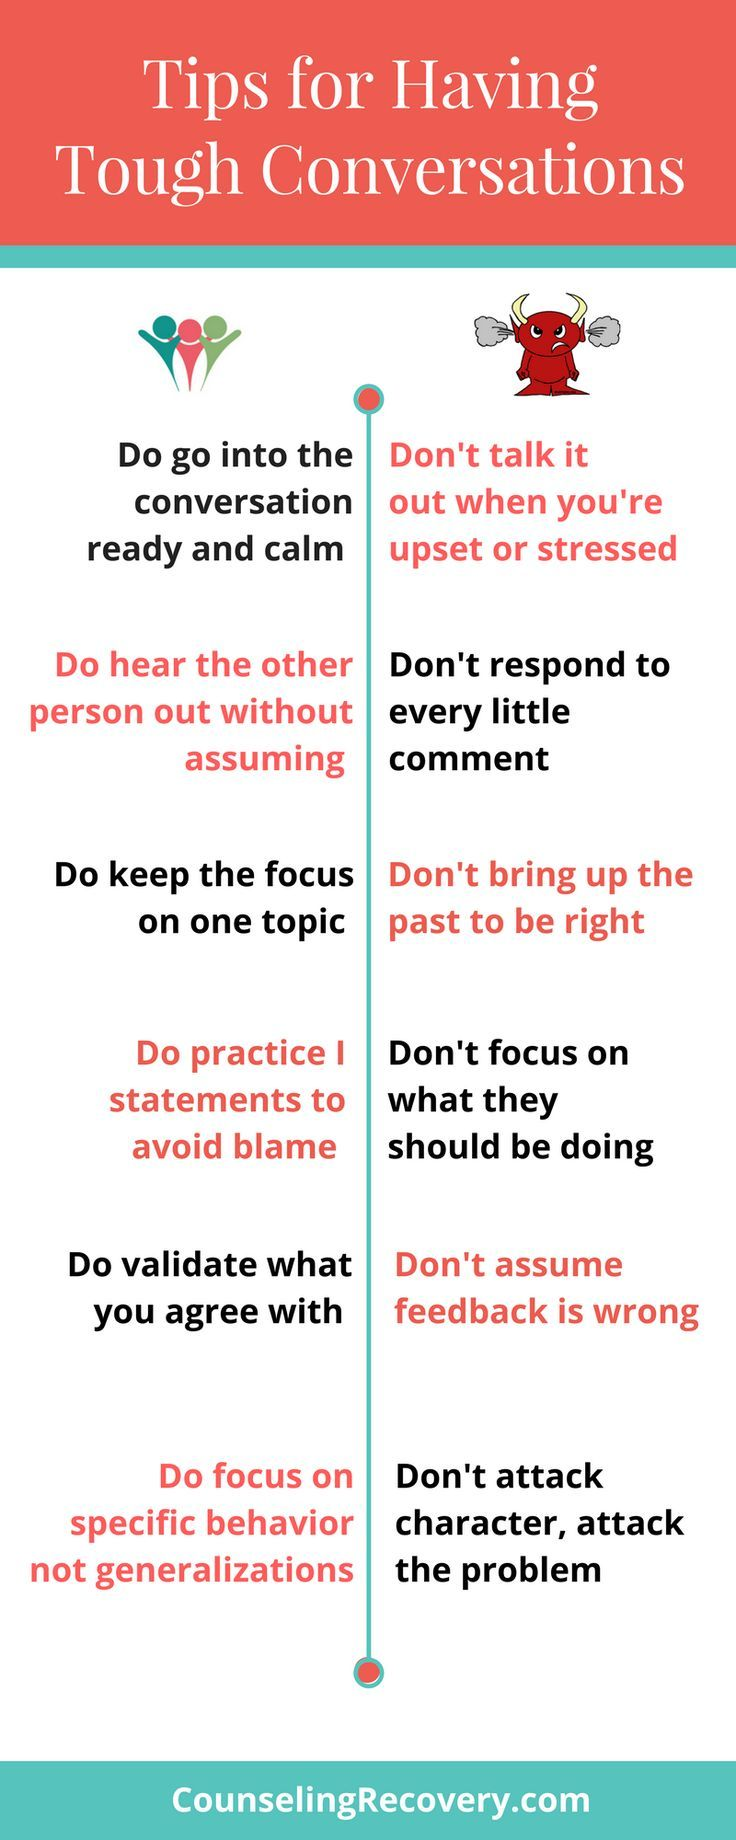 4 Steps for Effective Communication When Tough Conversations Arise ...